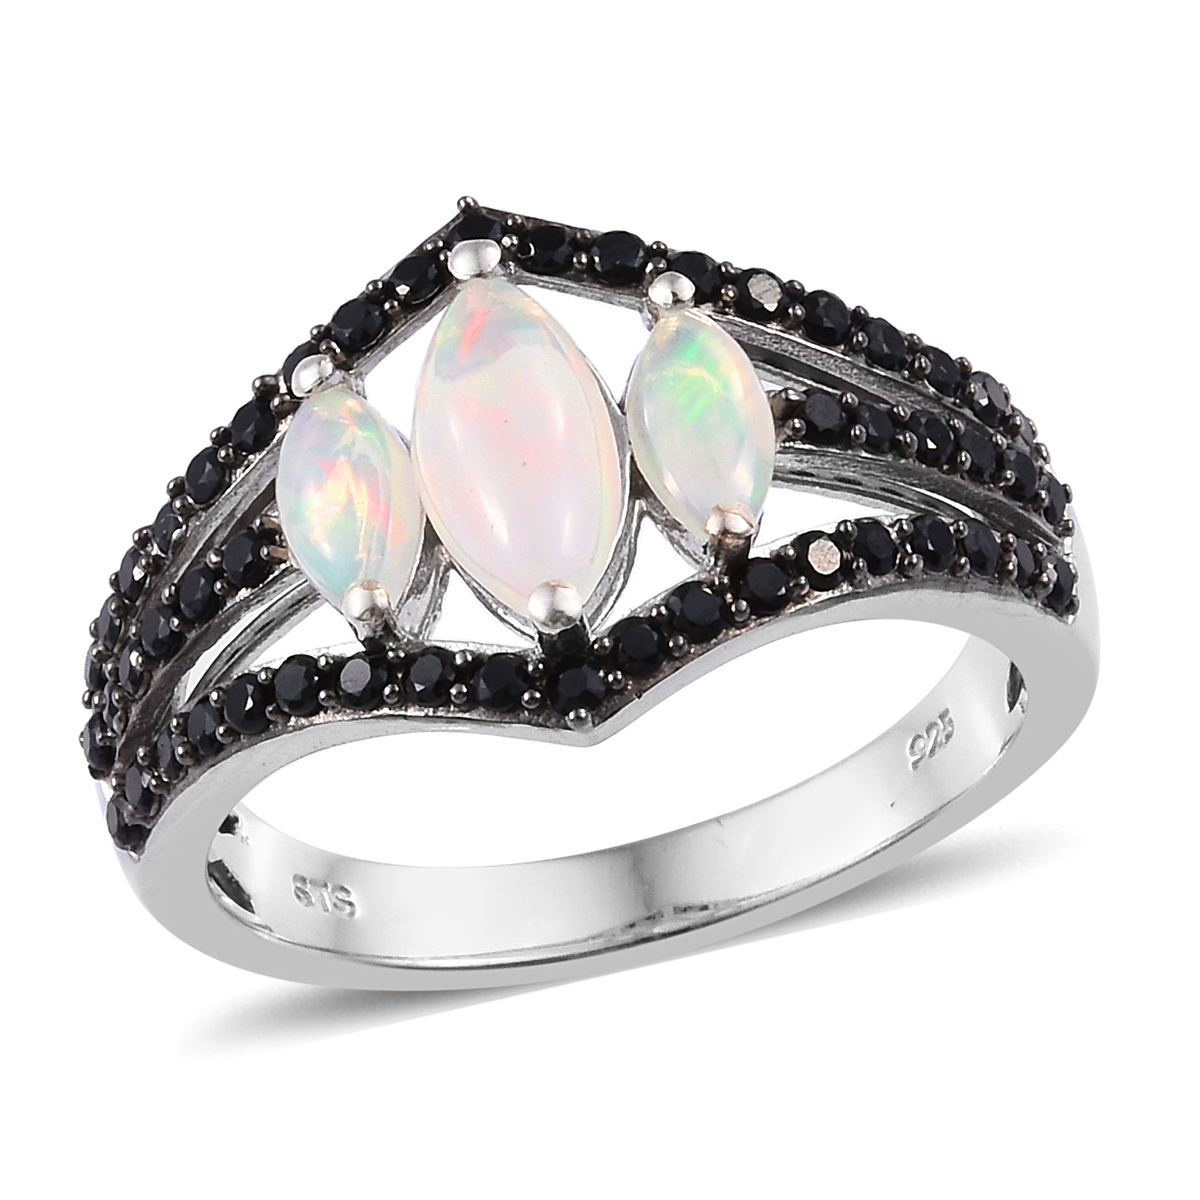 Ethiopian Welo Opal, Thai Black Spinel Ring in Platinum Over Sterling Silver (Size 11.0) 2.12 ctw